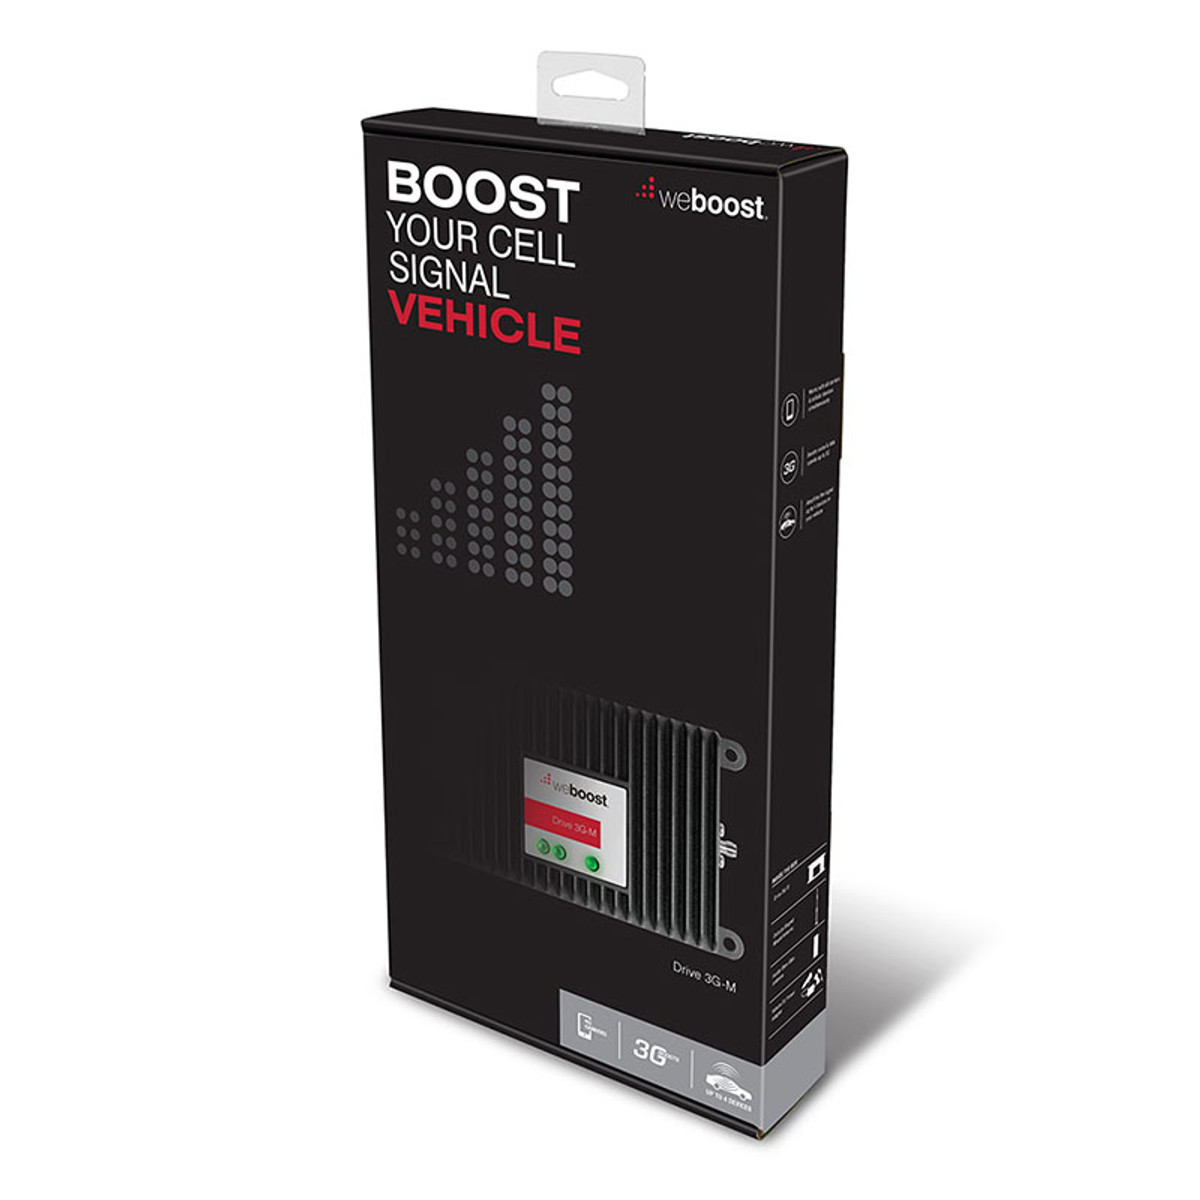 weBoost Drive 3G-M Cell Phone Signal Booster | 470102 Box